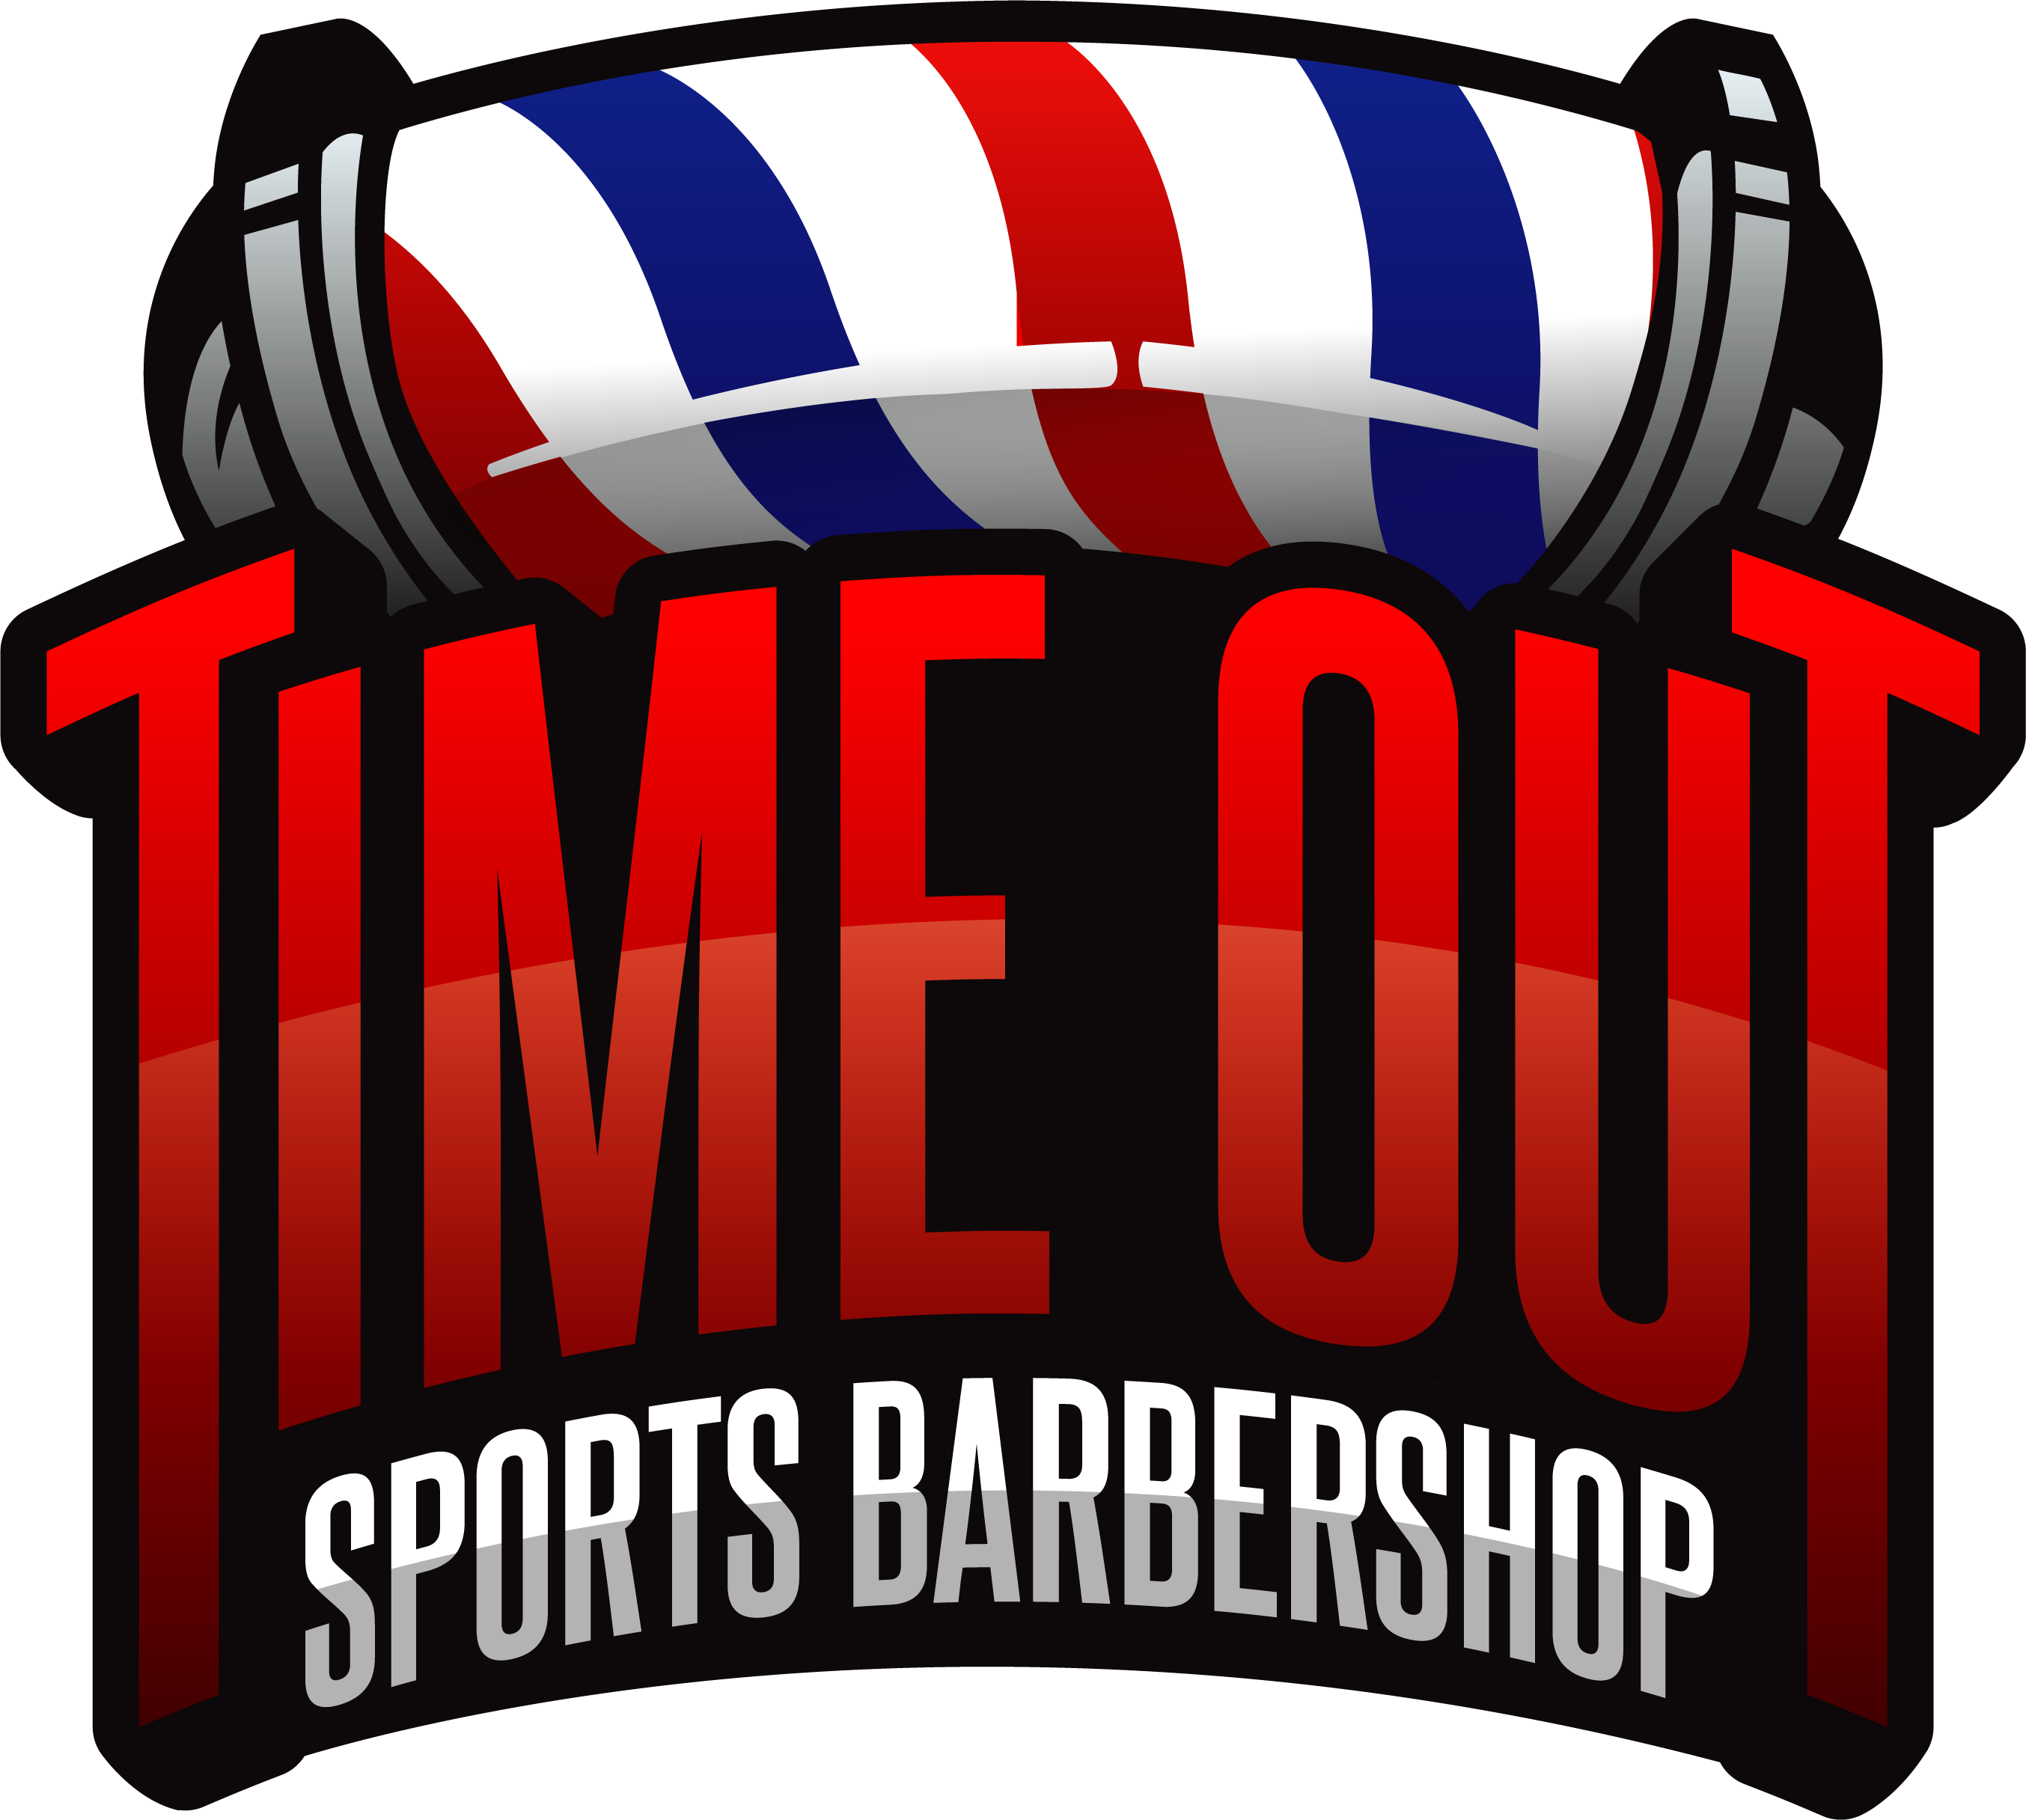 Time Out Sports Barbershop